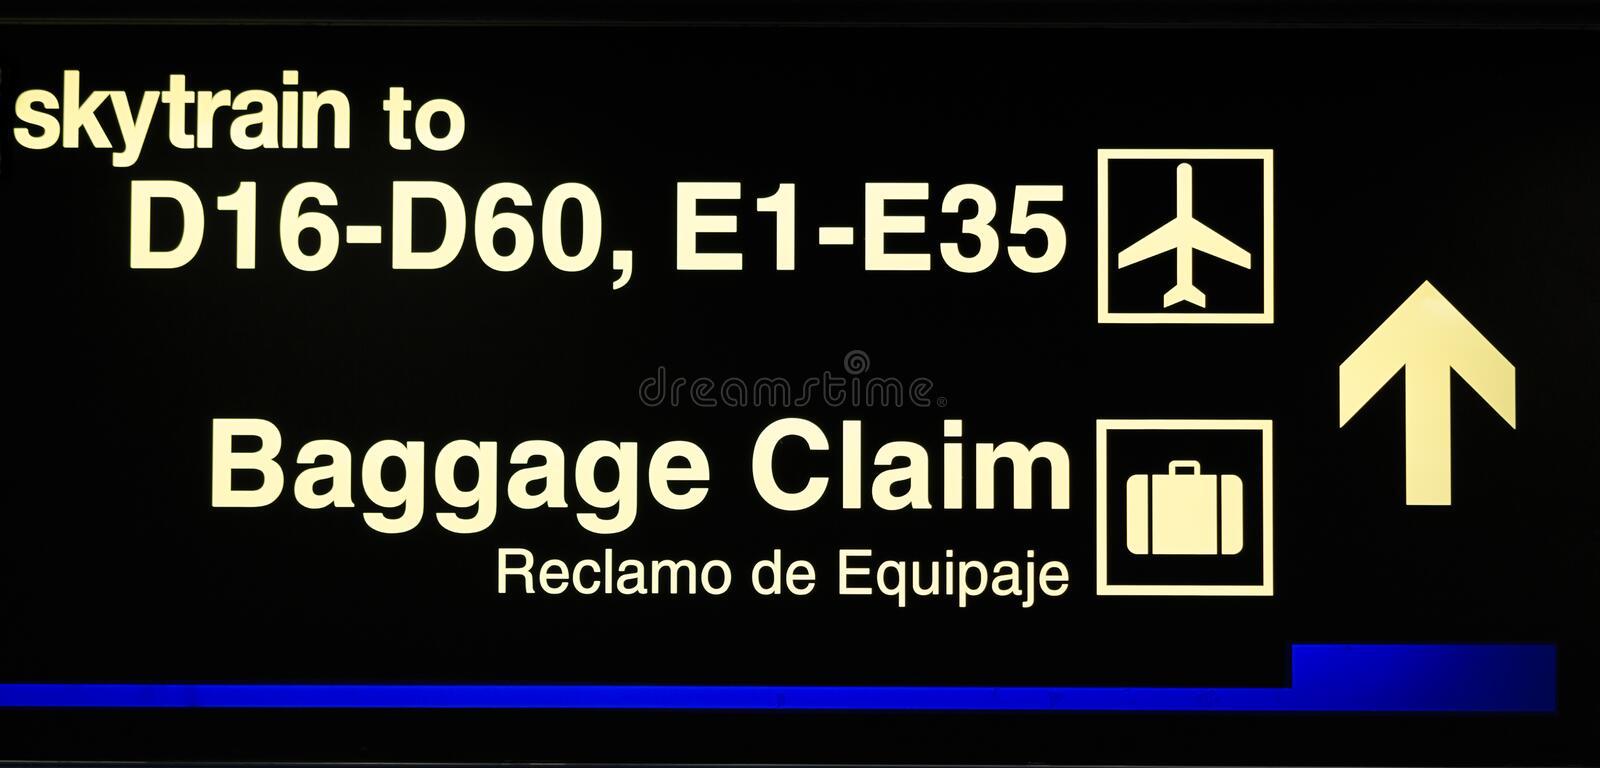 Airport gate and baggage claim sign royalty free stock images